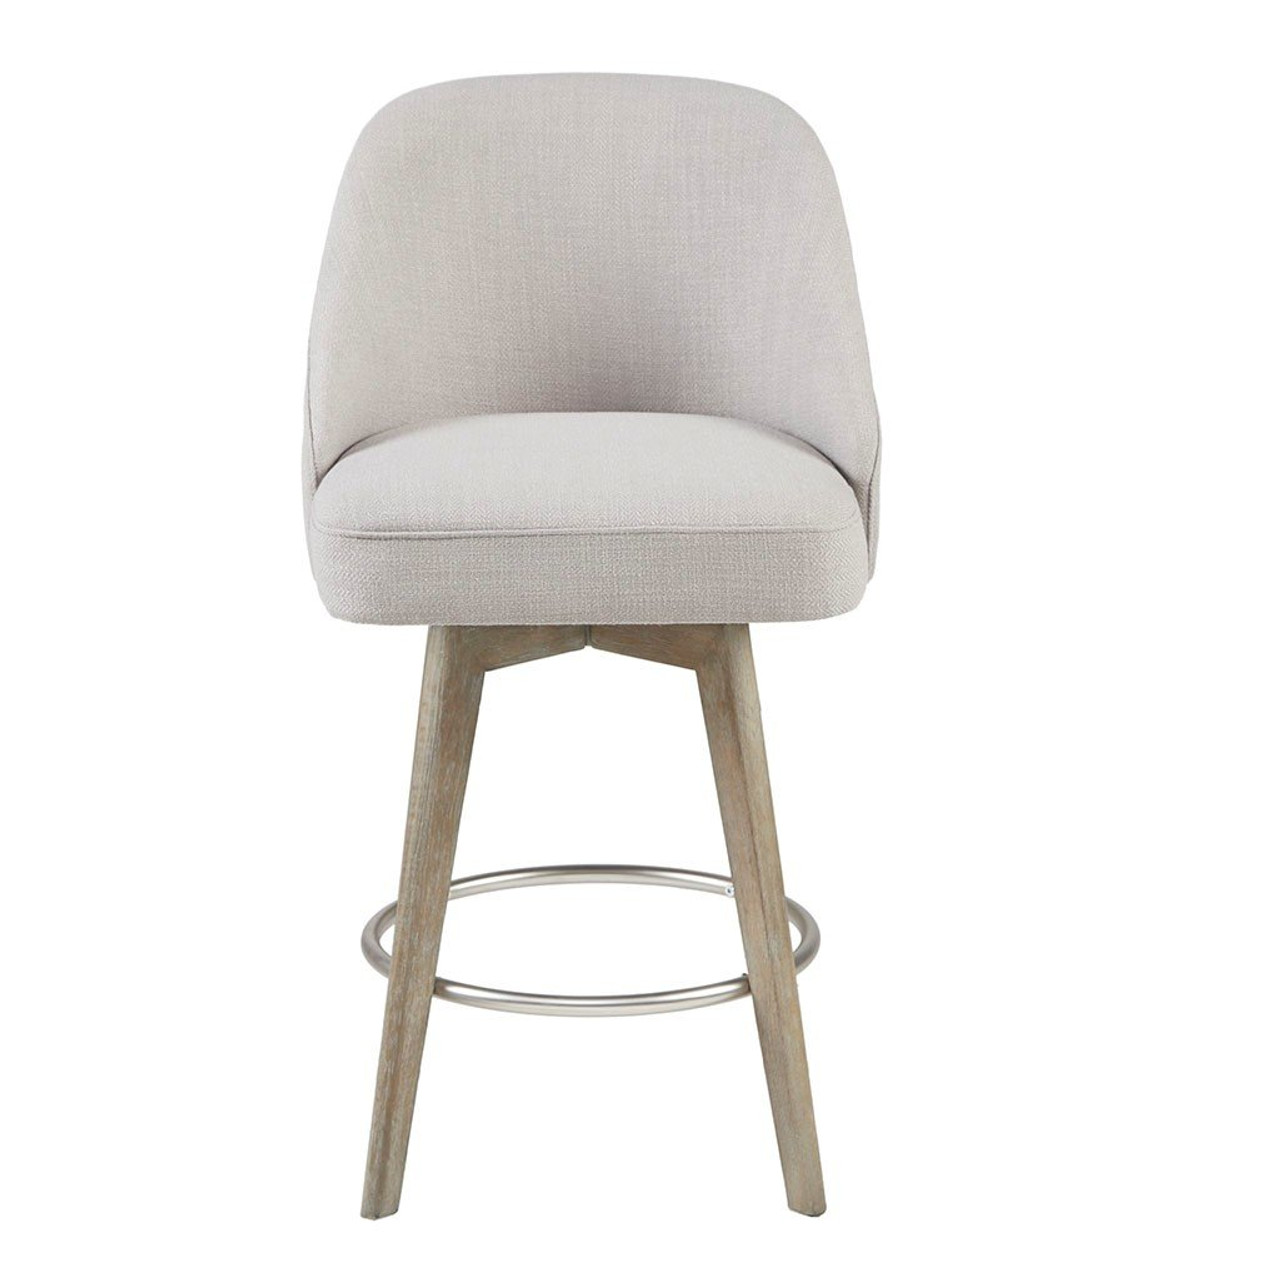 Madison Park Pearce Counter Stool With Swivel Seat MP9 9 By Olliix